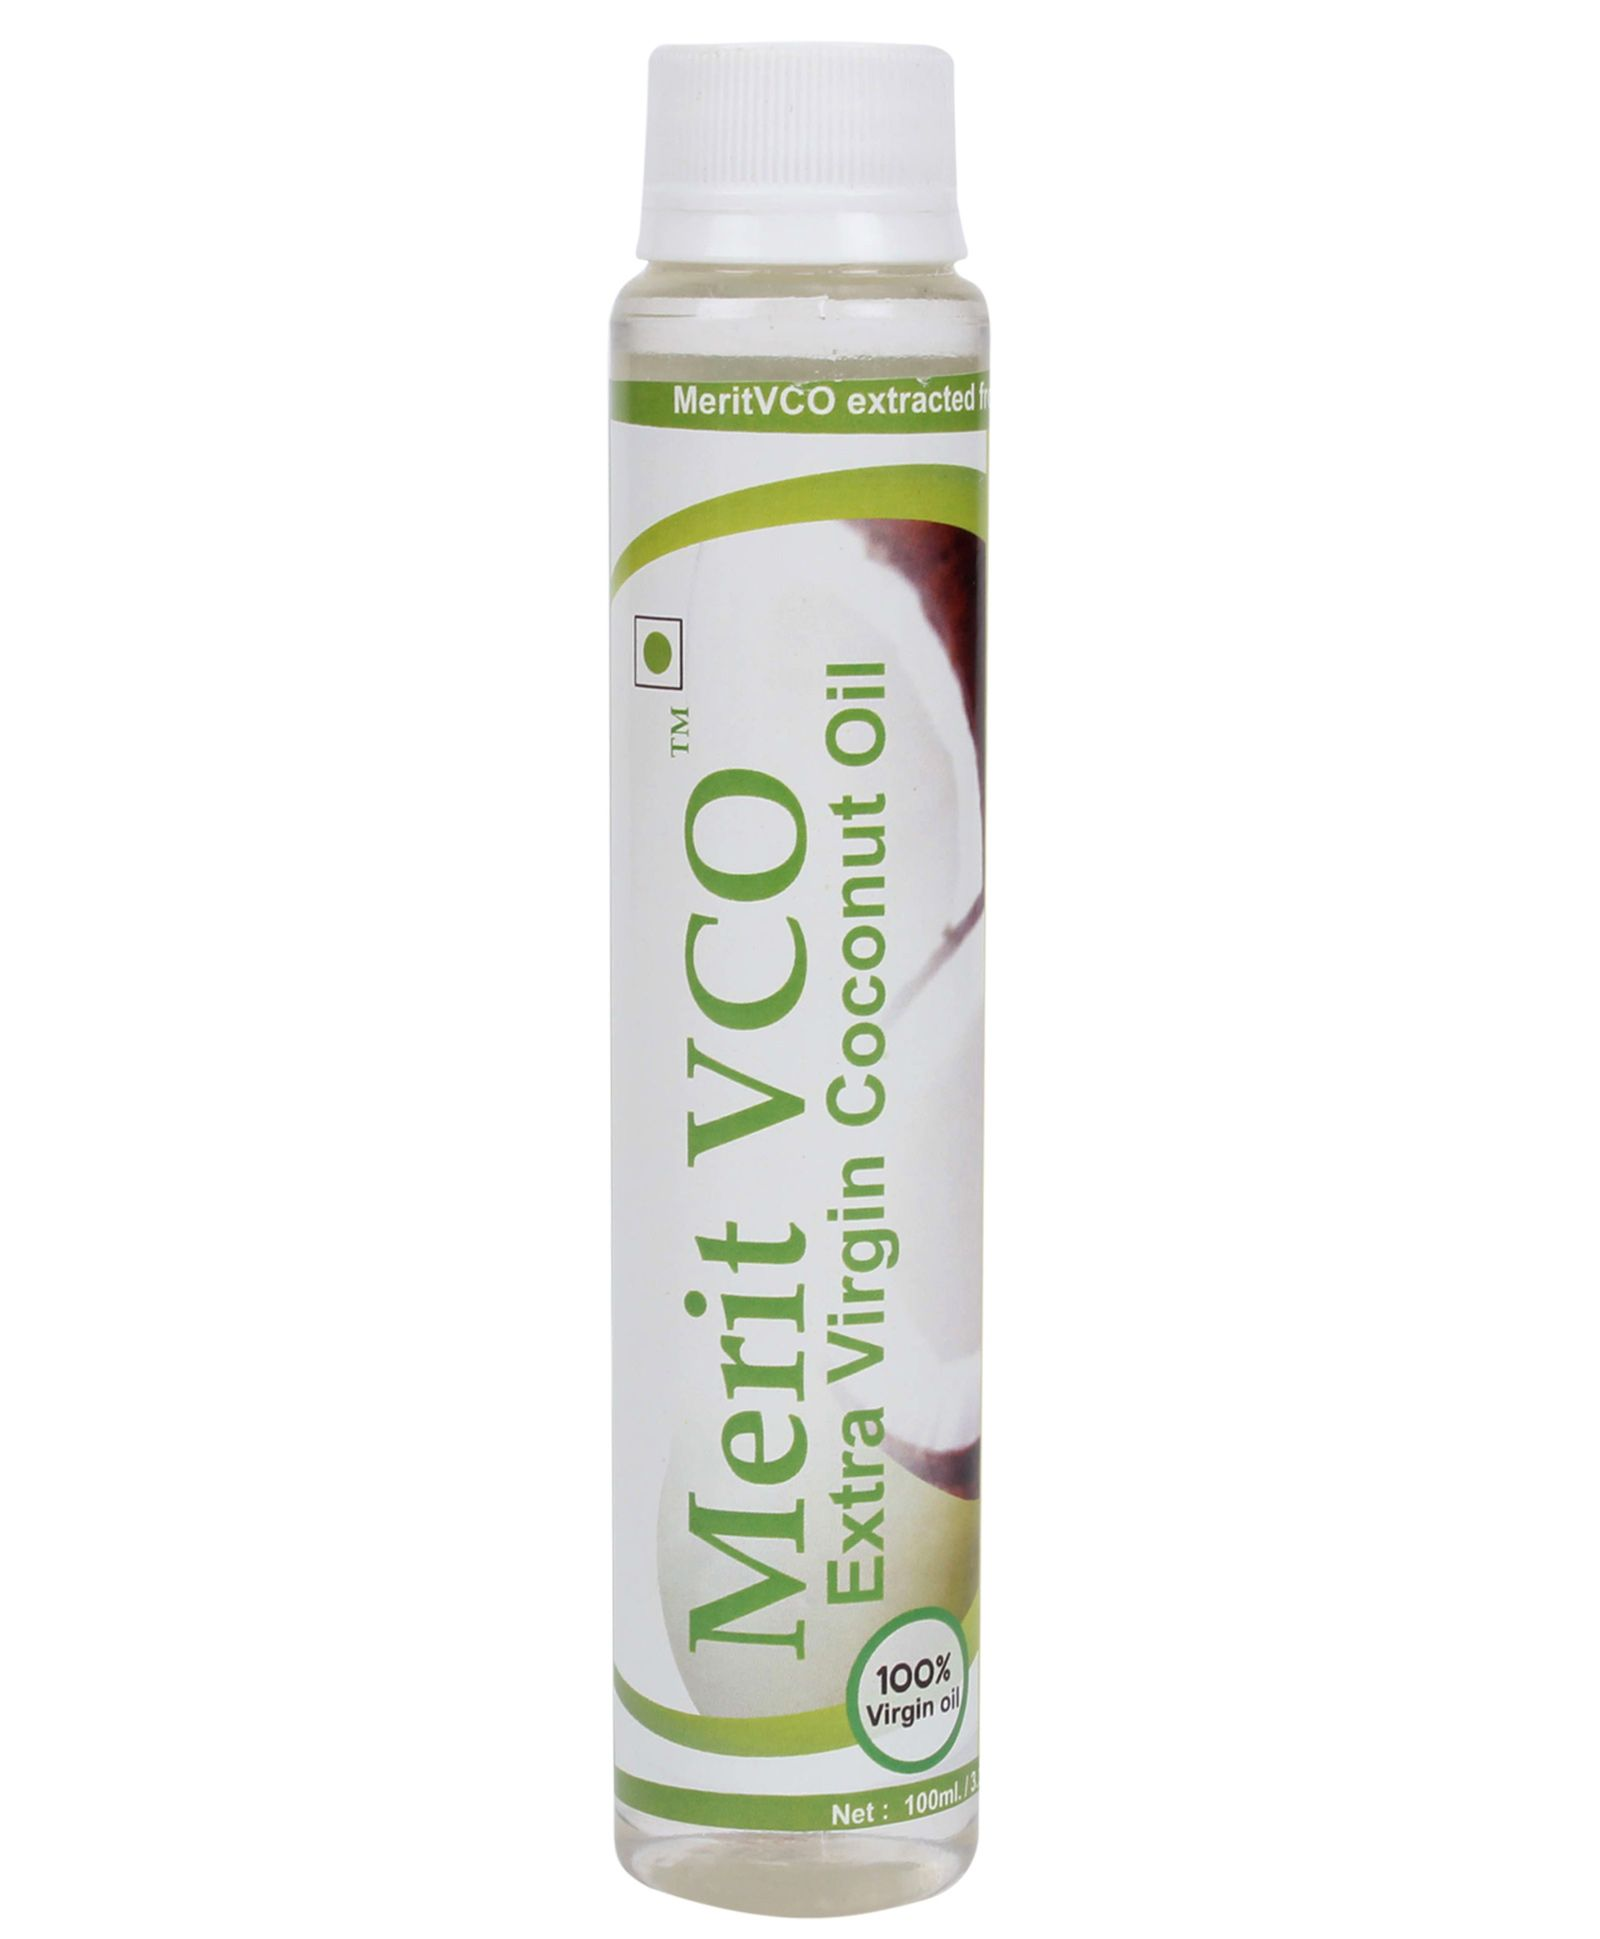 Merit Vco Extra Virgin Coconut Oil  available at Nykaa for Rs.110